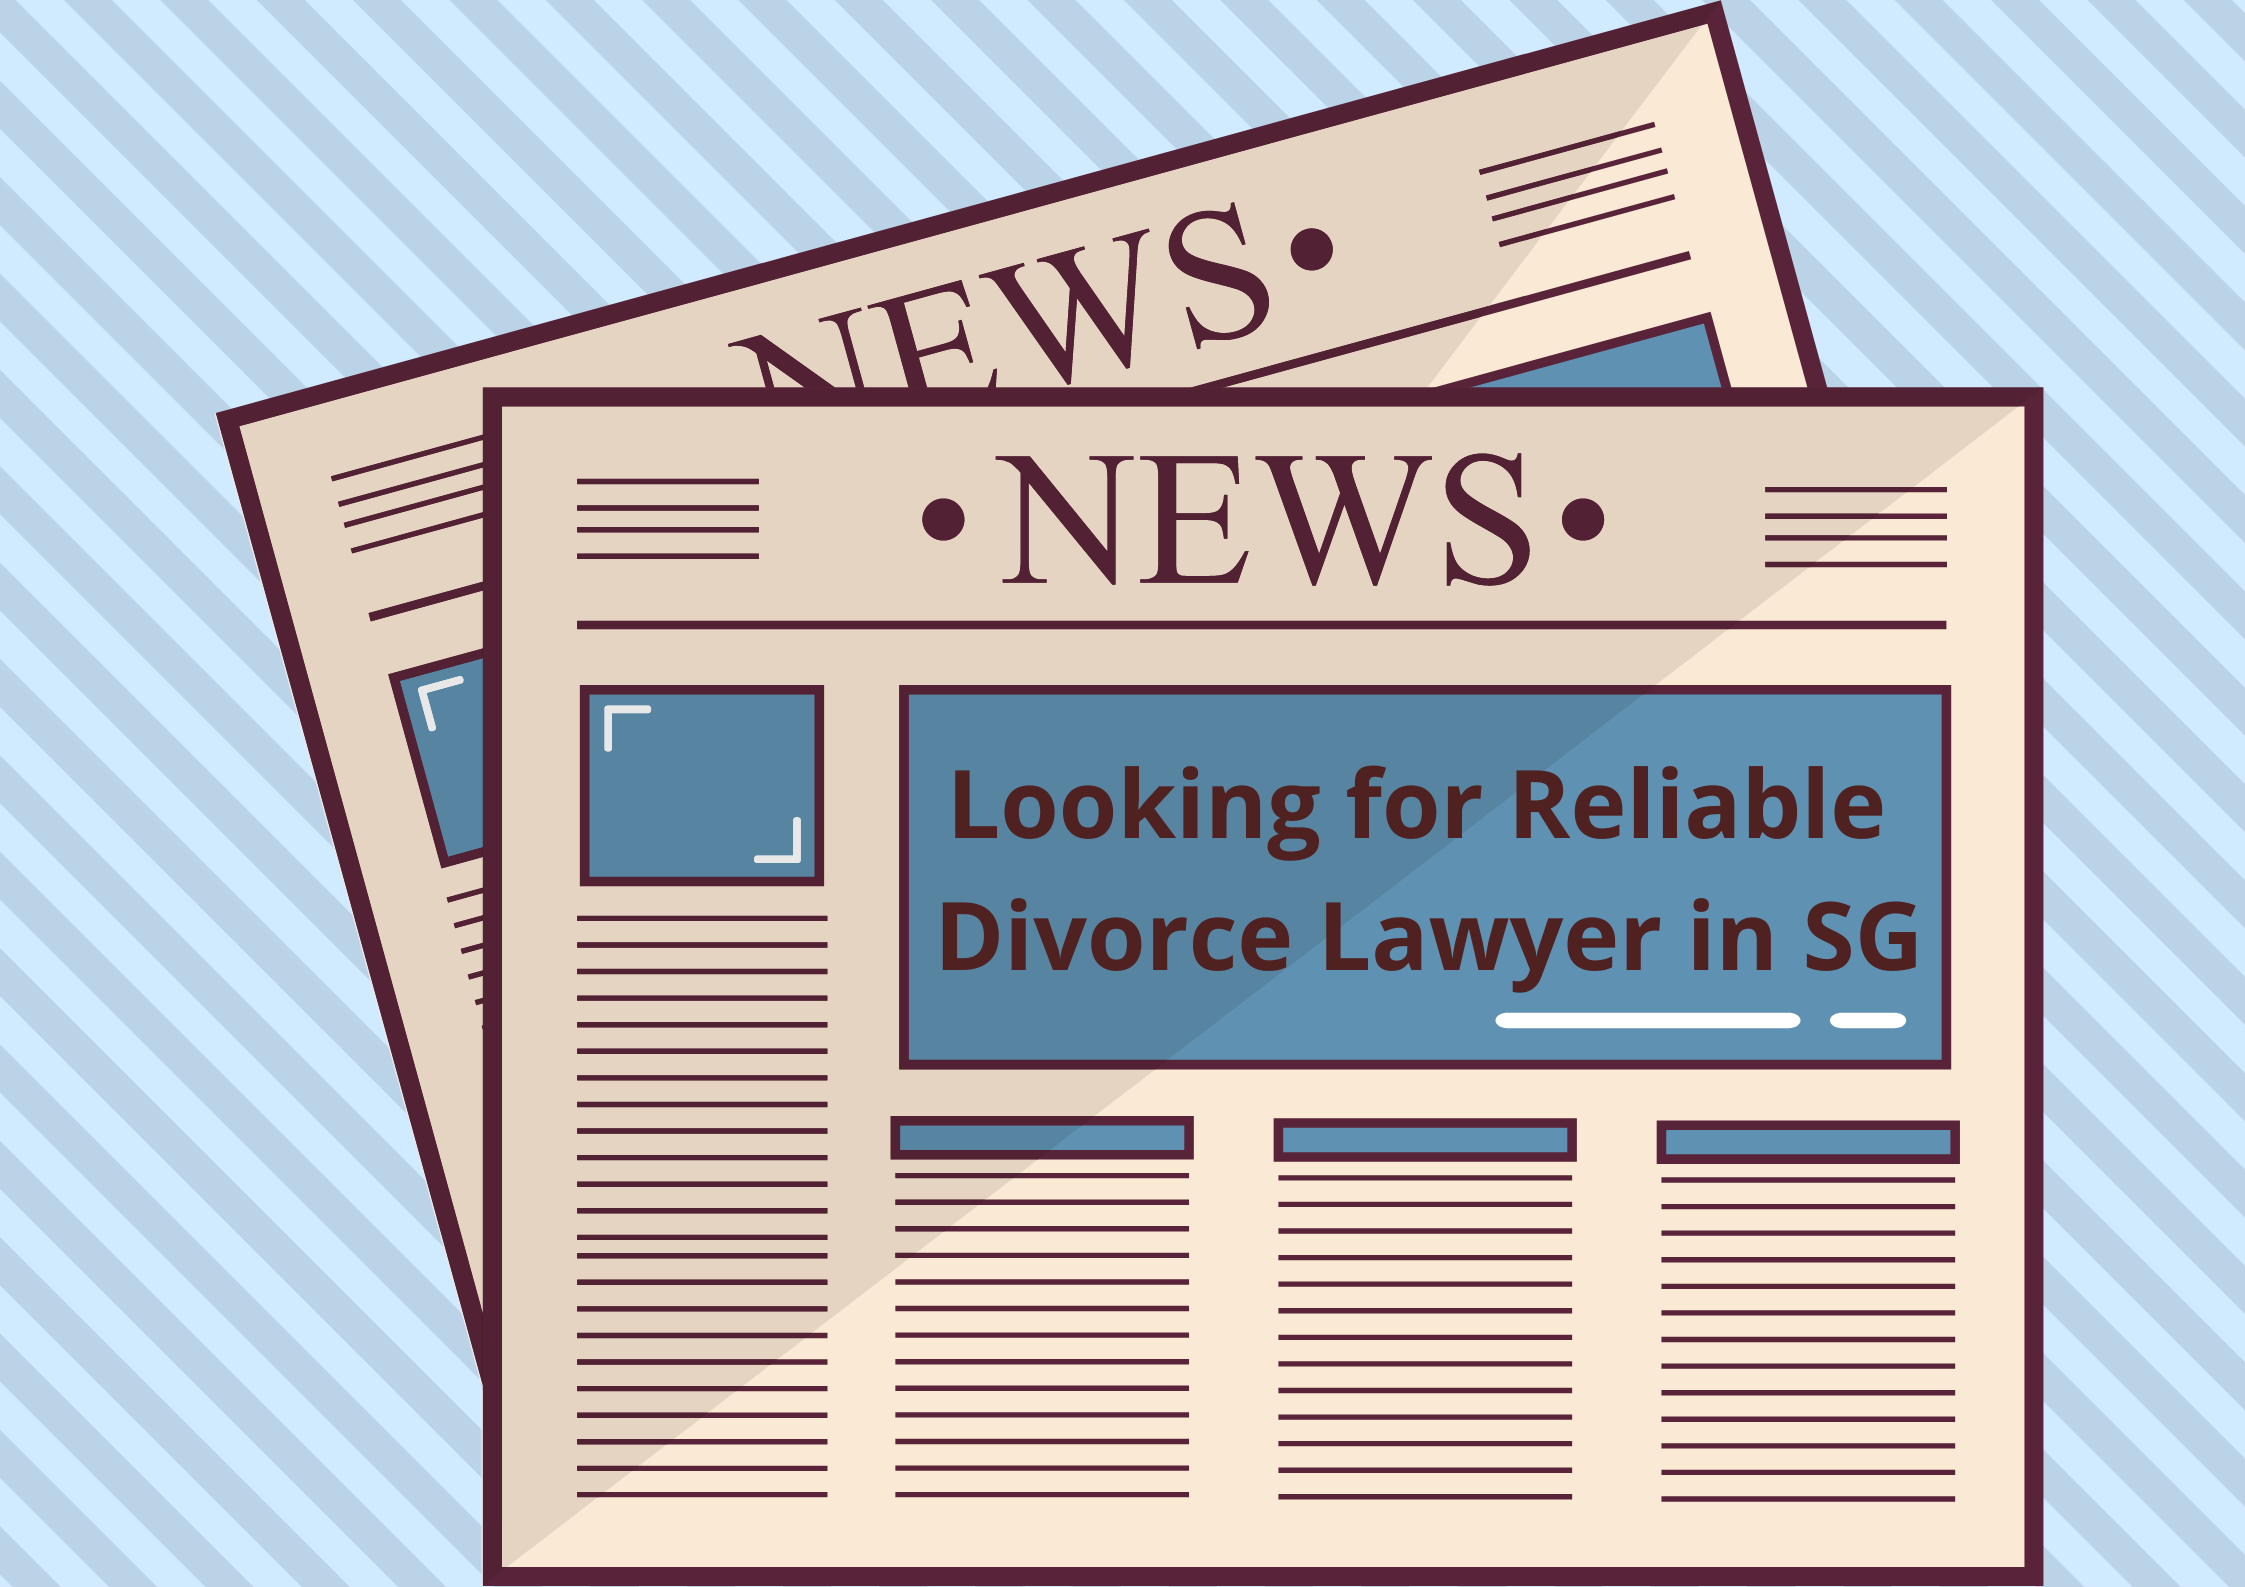 Looking-for-Reliable-Divorce-Lawyer-in-SG